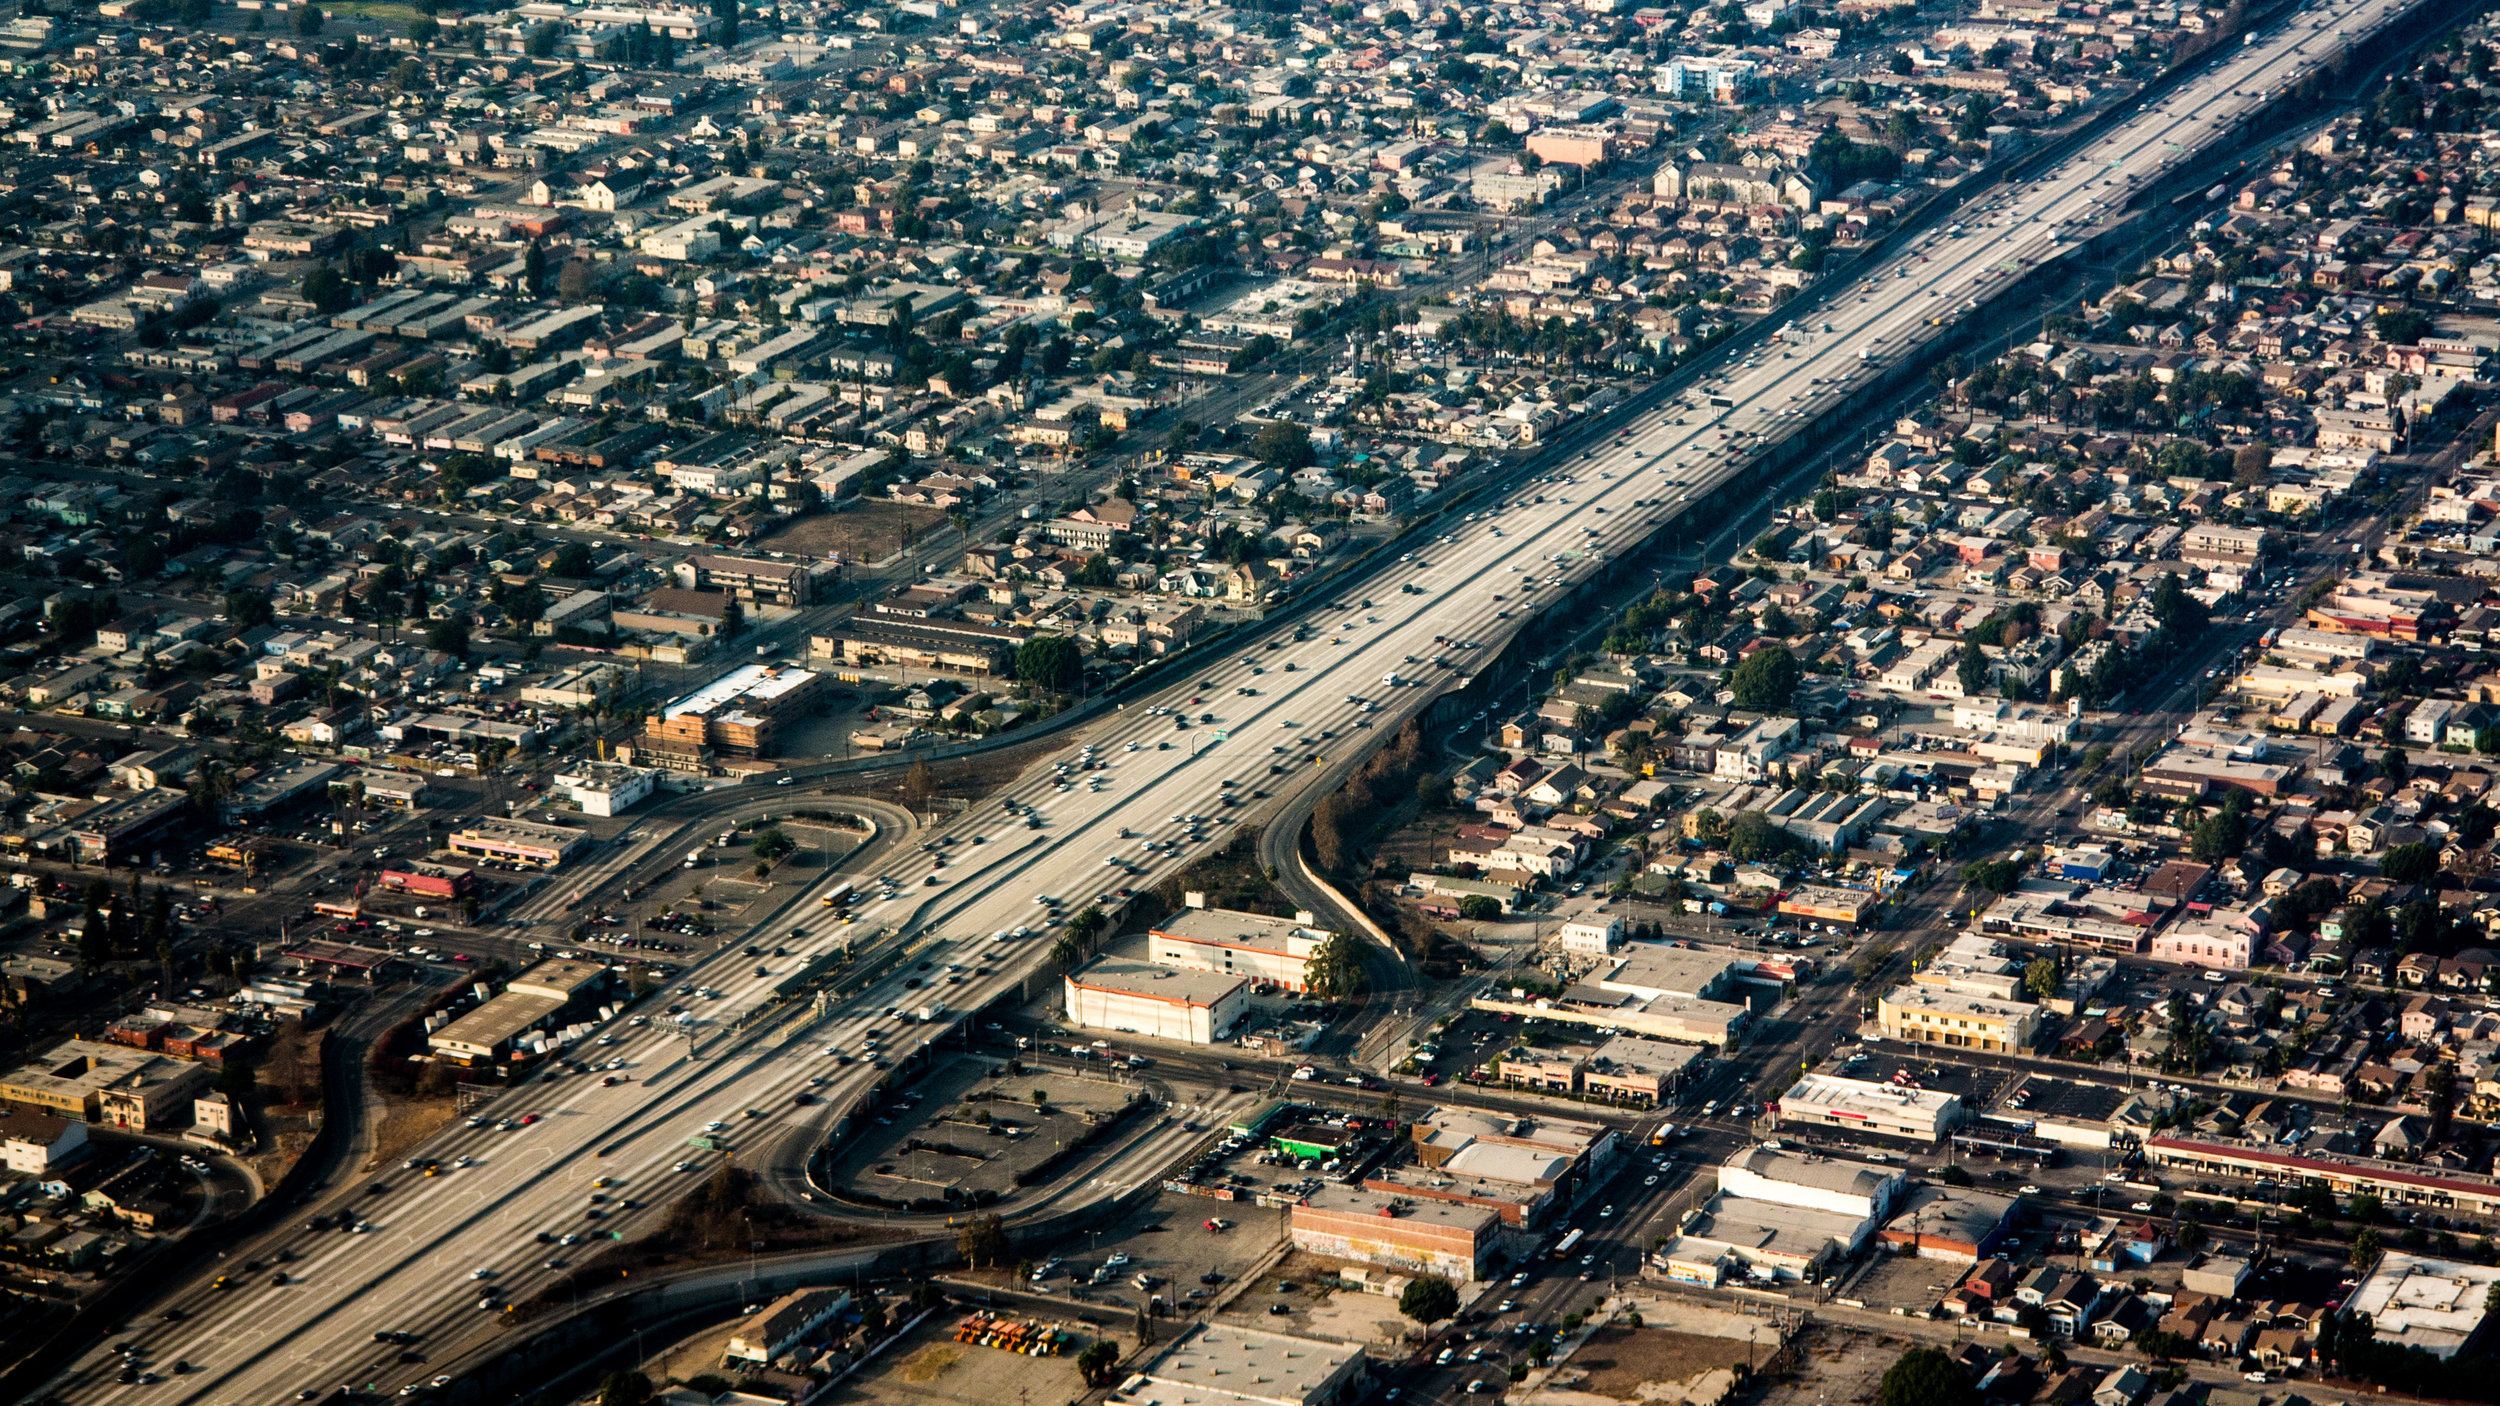 Los Angeles Freeway 20131023 5mb-3612-4-16x9.jpg